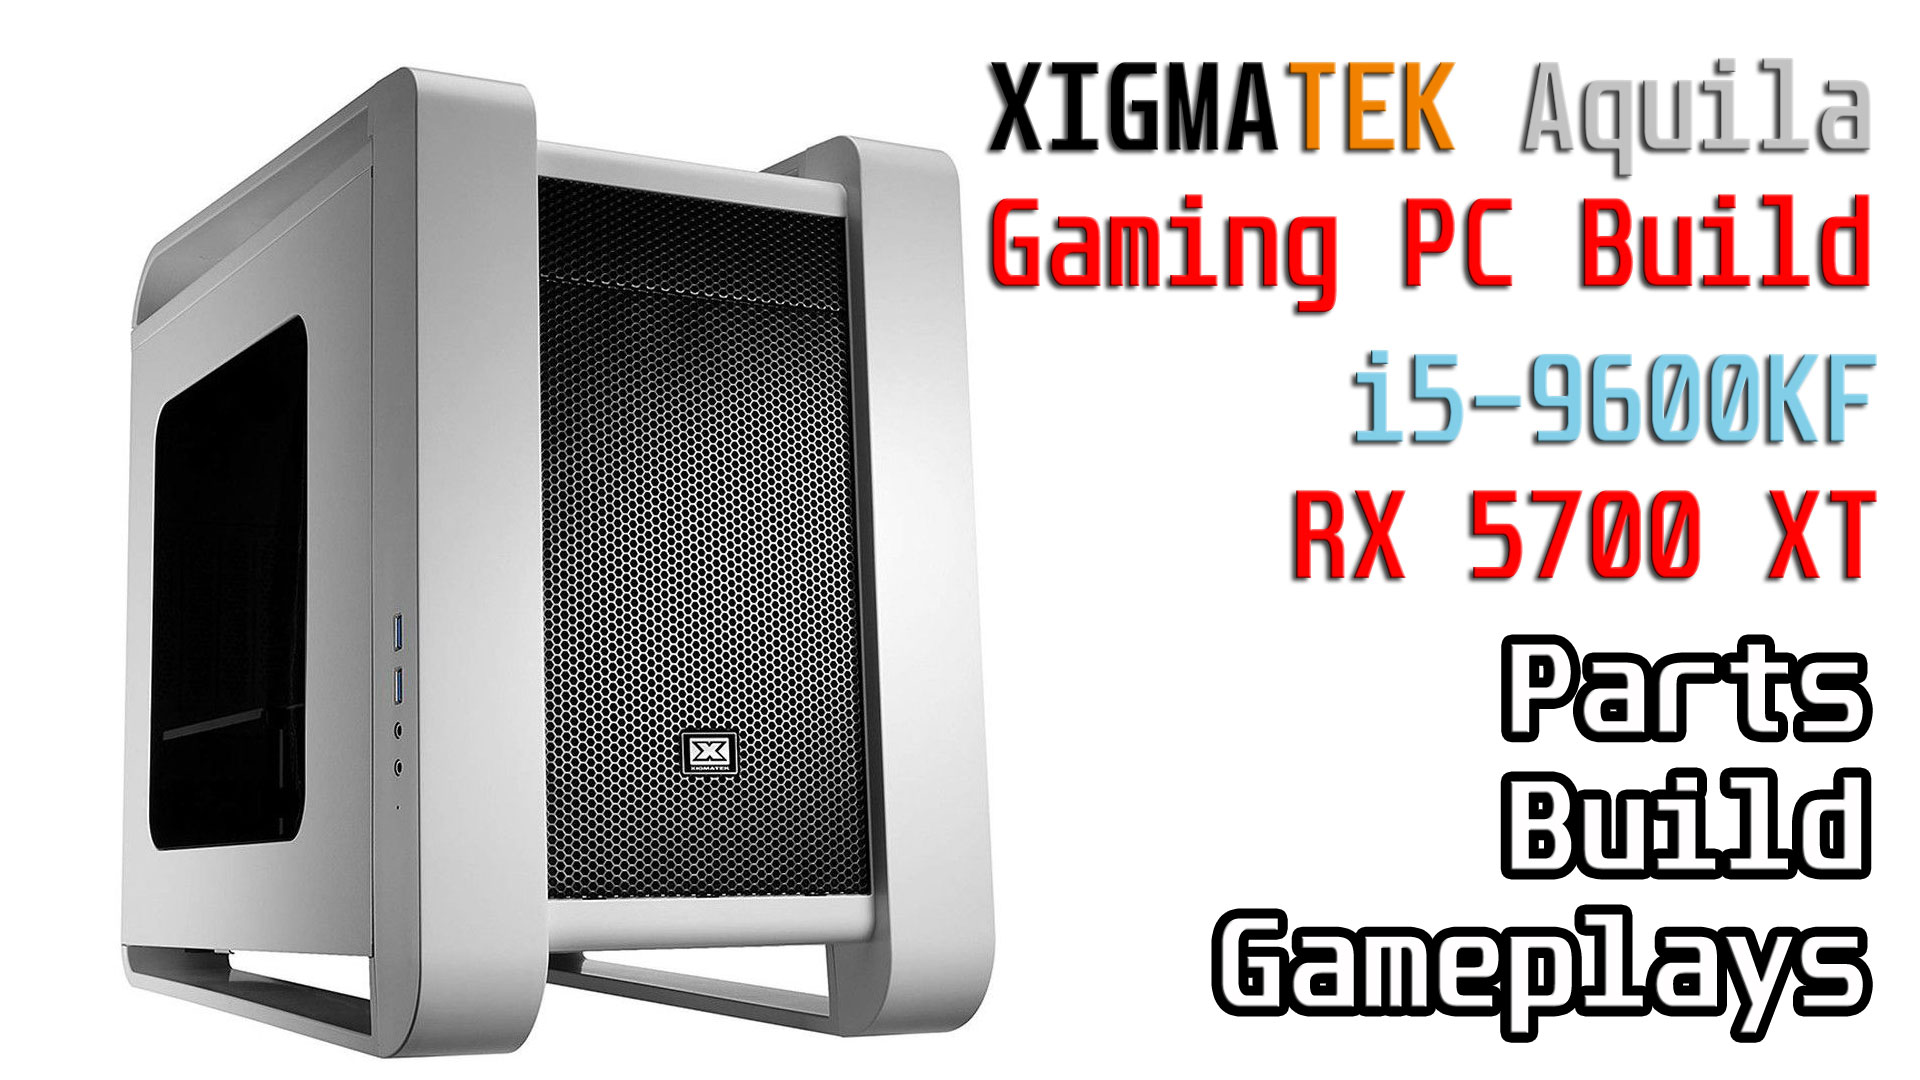 Xigmatek Aquila Gaming PC Build Core i5-9600KF & RX 5700 XT